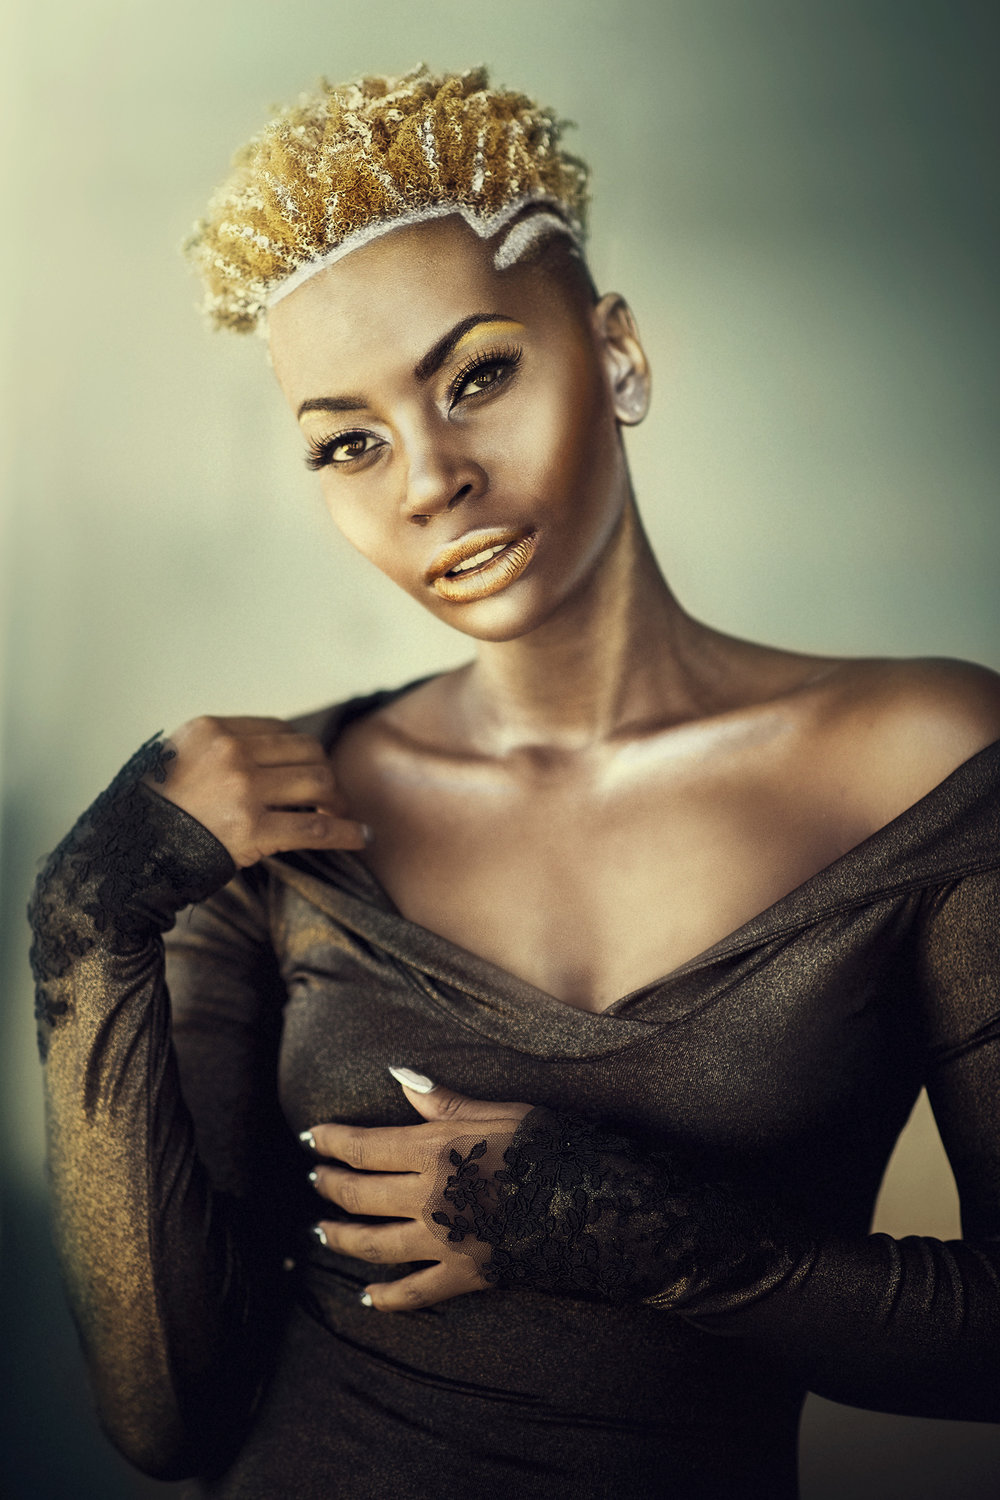 black fashion model in gold.jpg